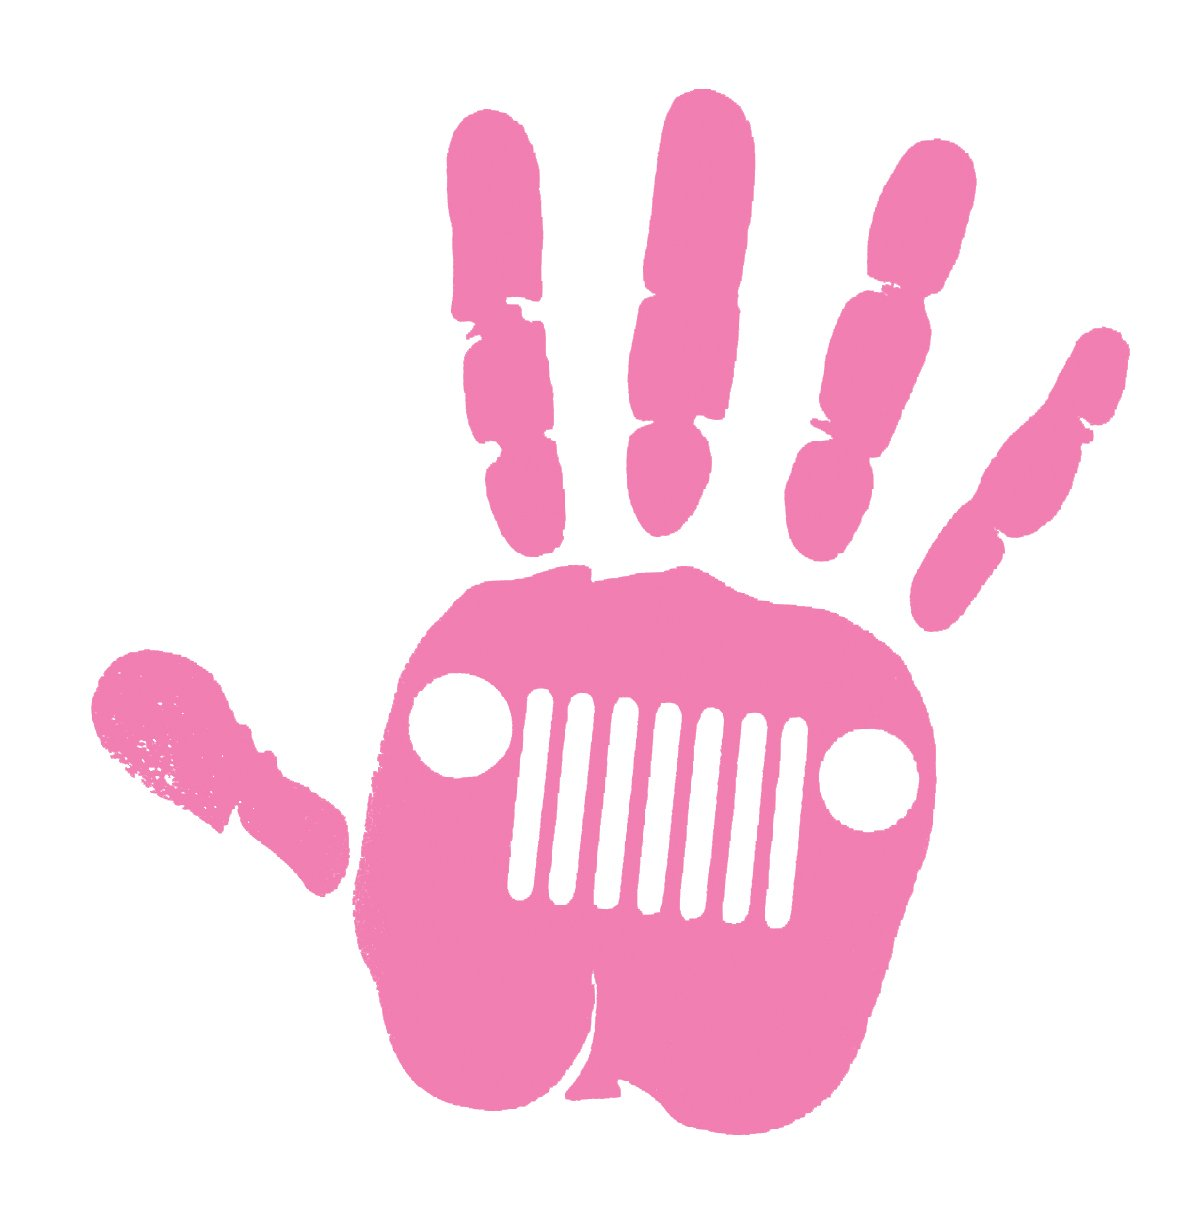 Jeep wave decal-pink color